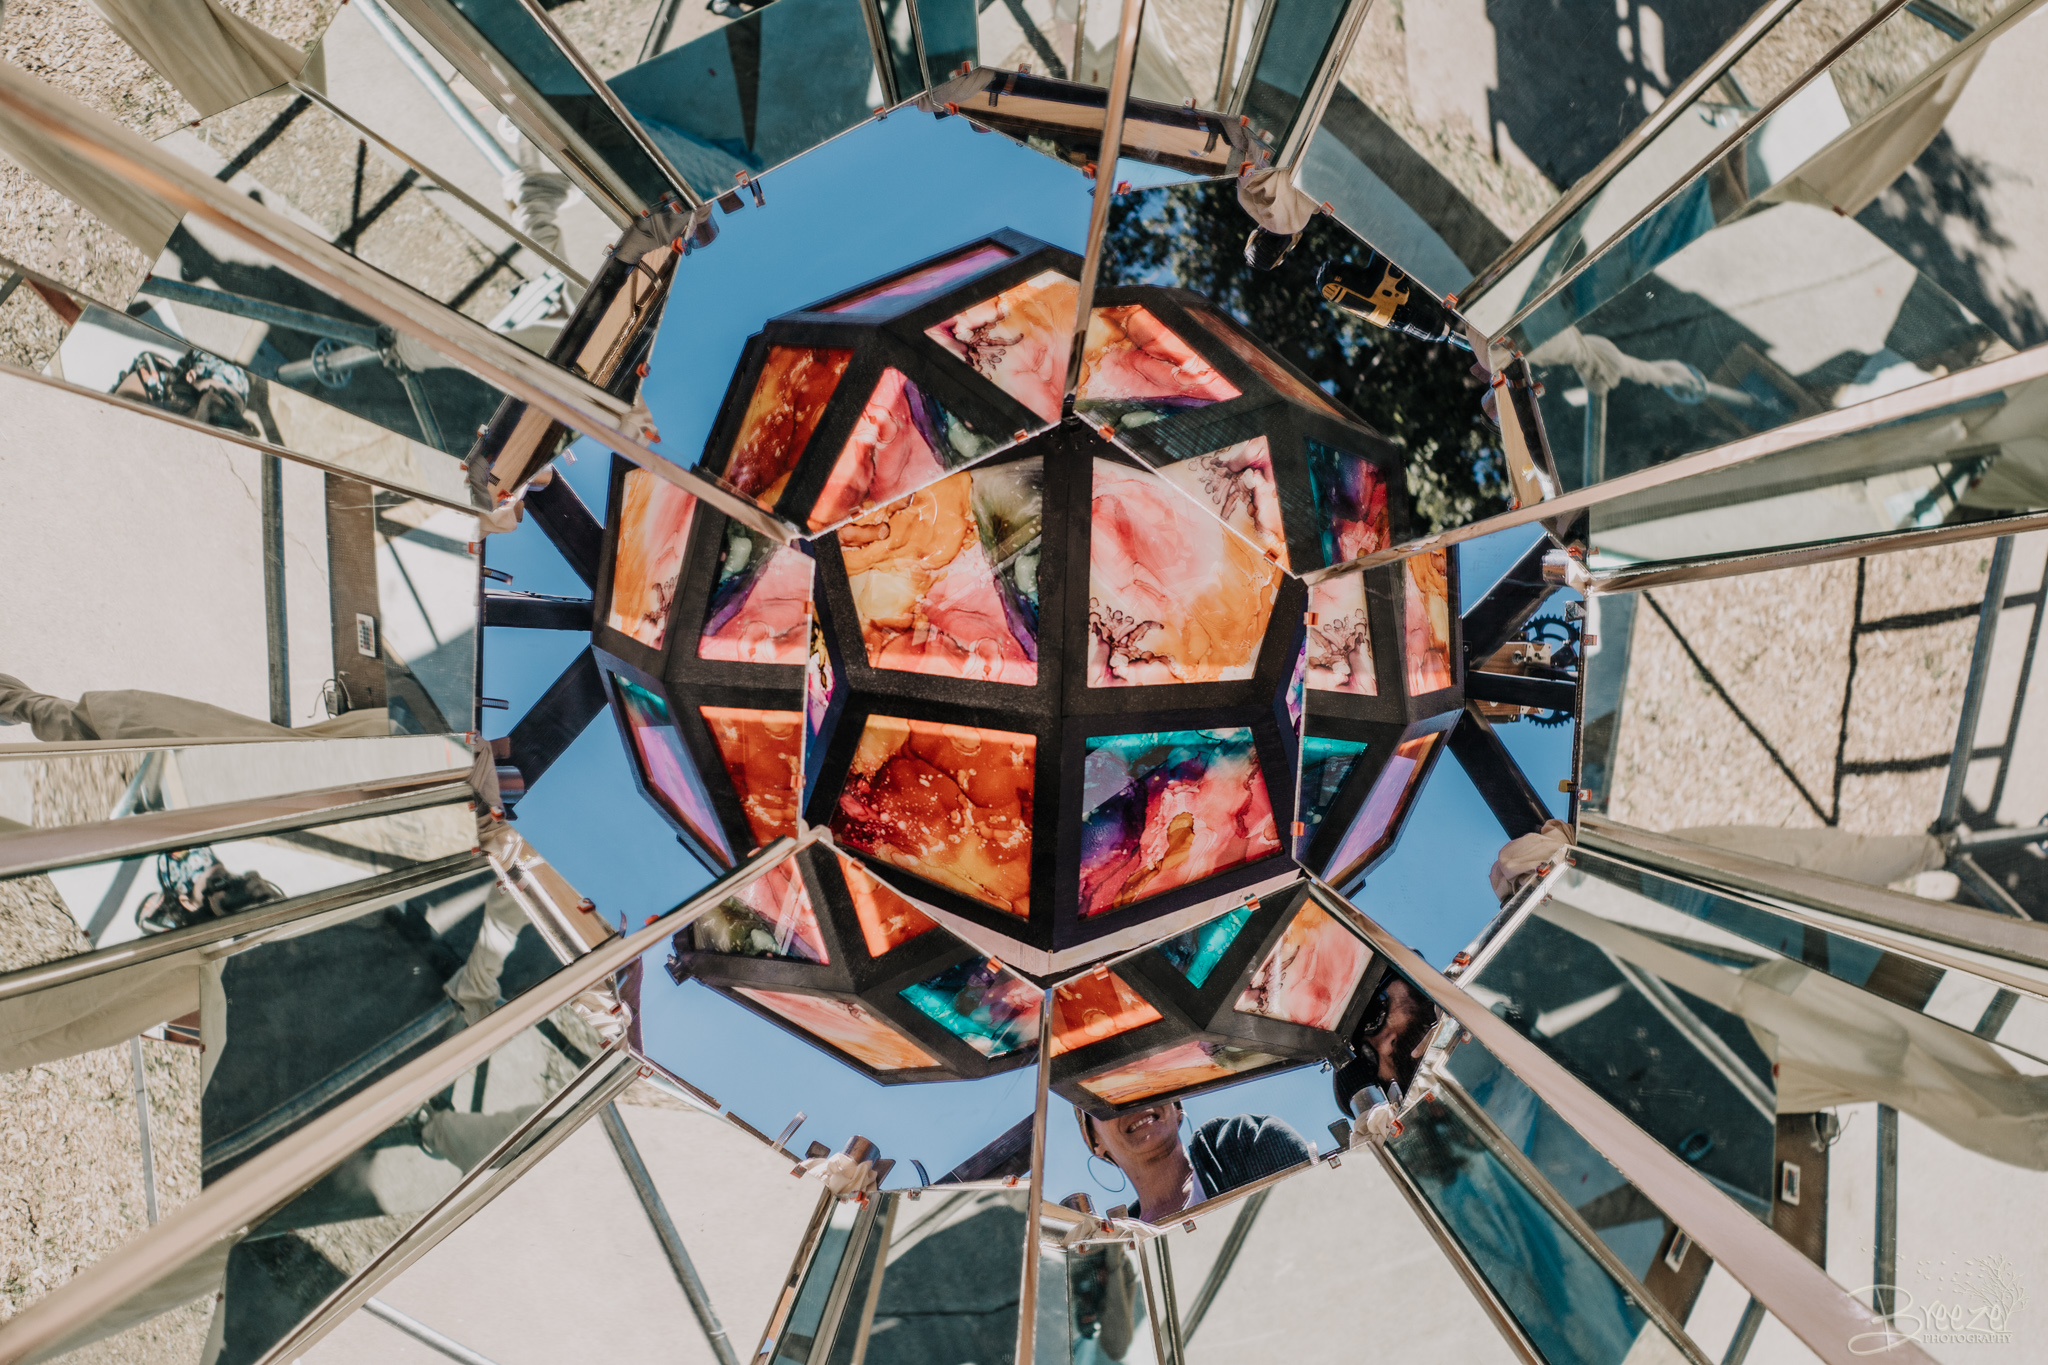 Lucidity.Festival.2019.Brie'Ana Breeze Photography and Media-6369.jpg